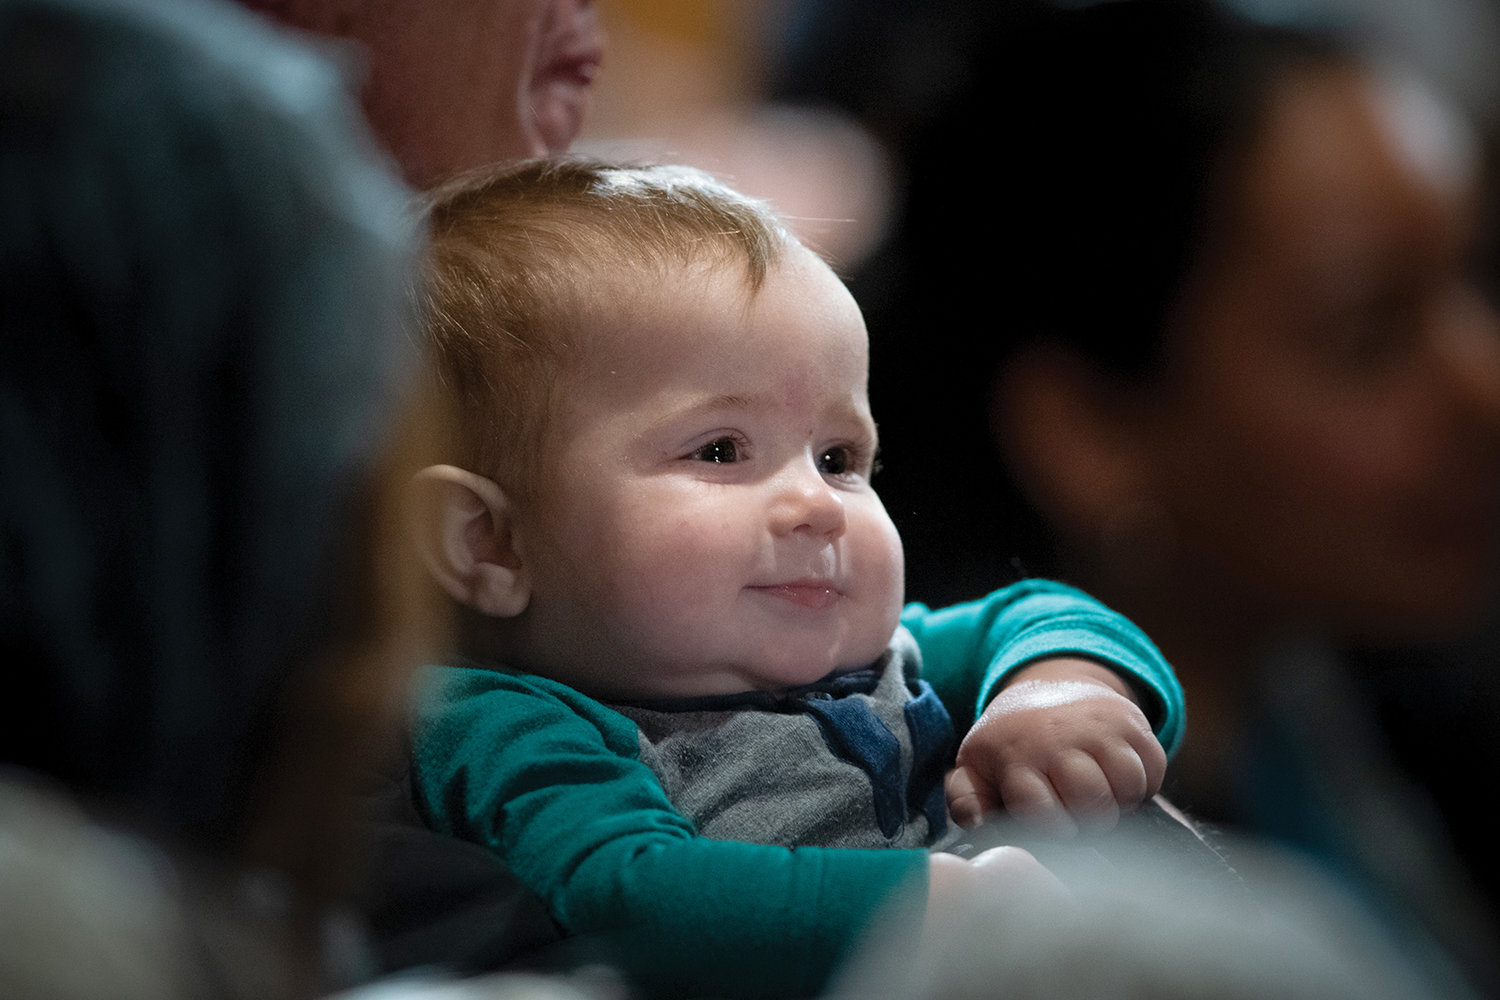 A baby's face brightens the opening Mass of the National Prayer Vigil for Life in the Basilica of the National Shrine of the Immaculate Conception Jan. 23.